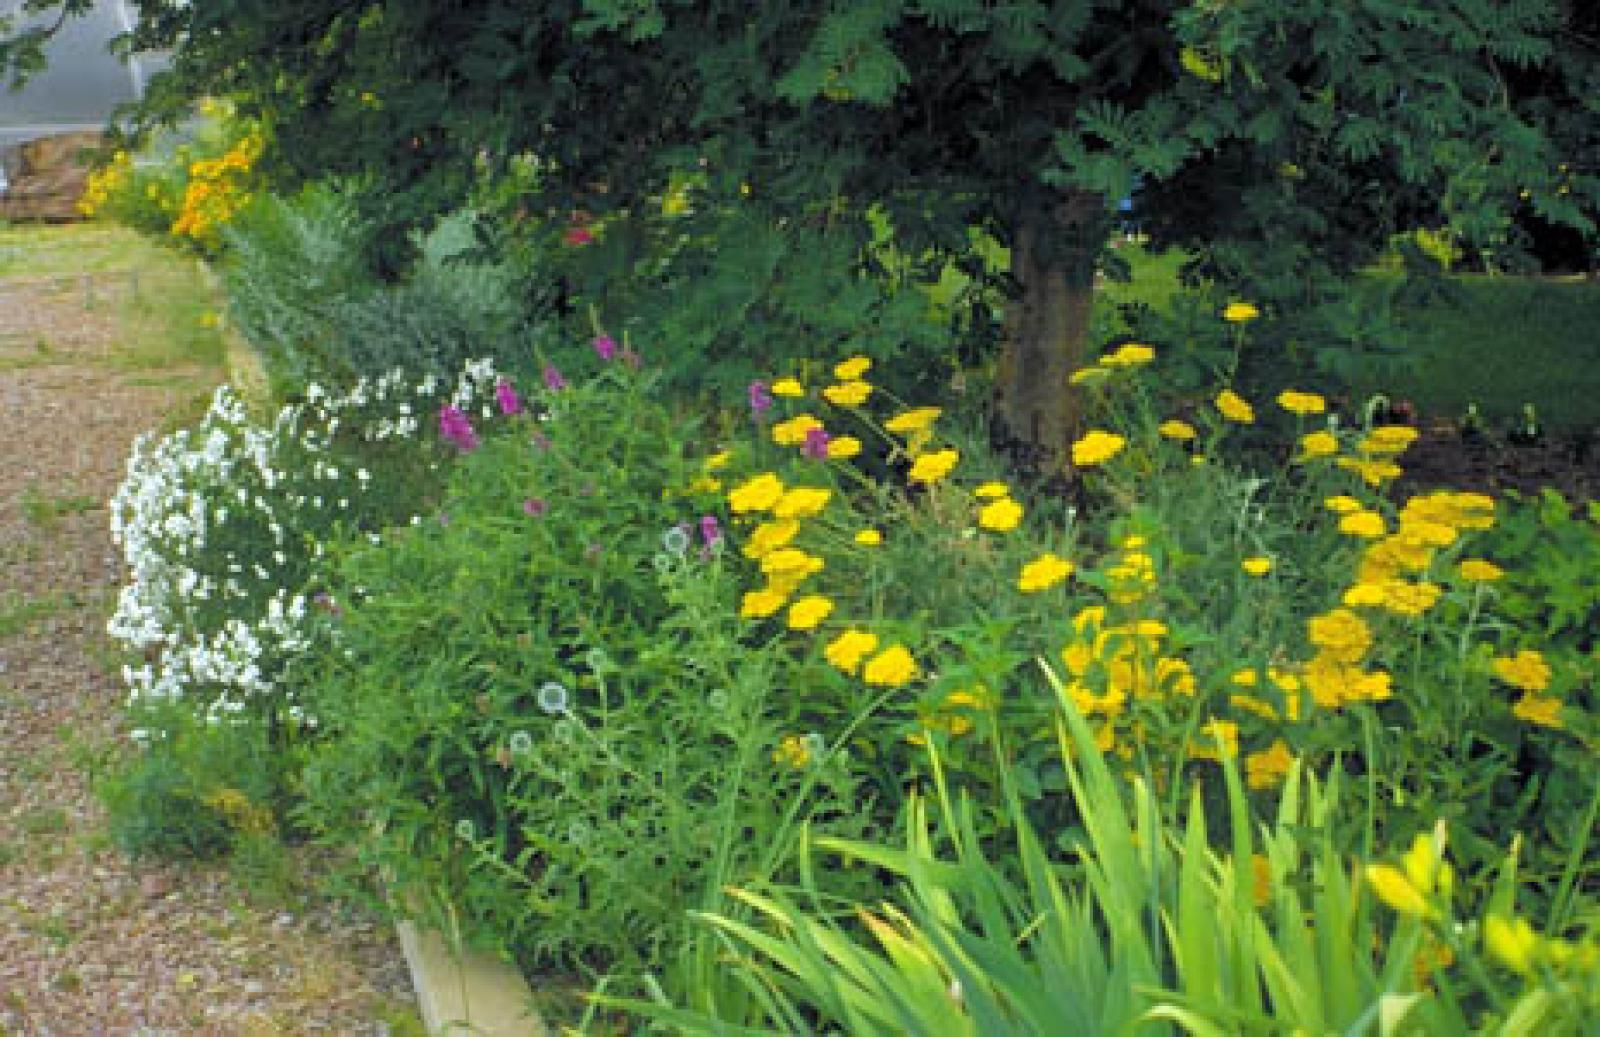 Xeriscaping (above) is not synonymous with Zeroscaping (below).